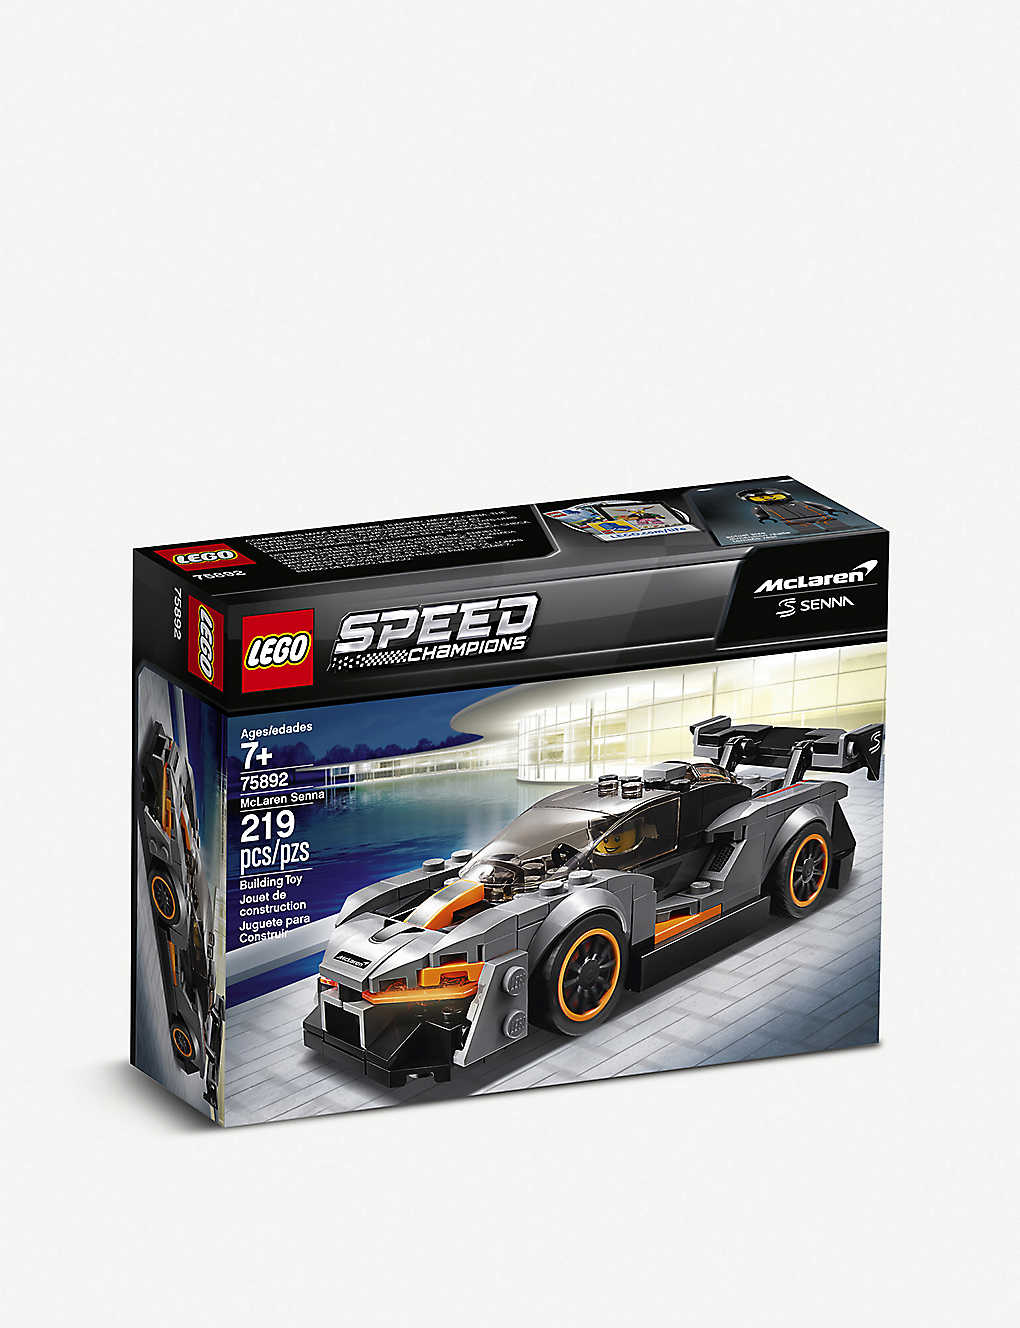 LEGO: Speed Champions McLaren Senna set